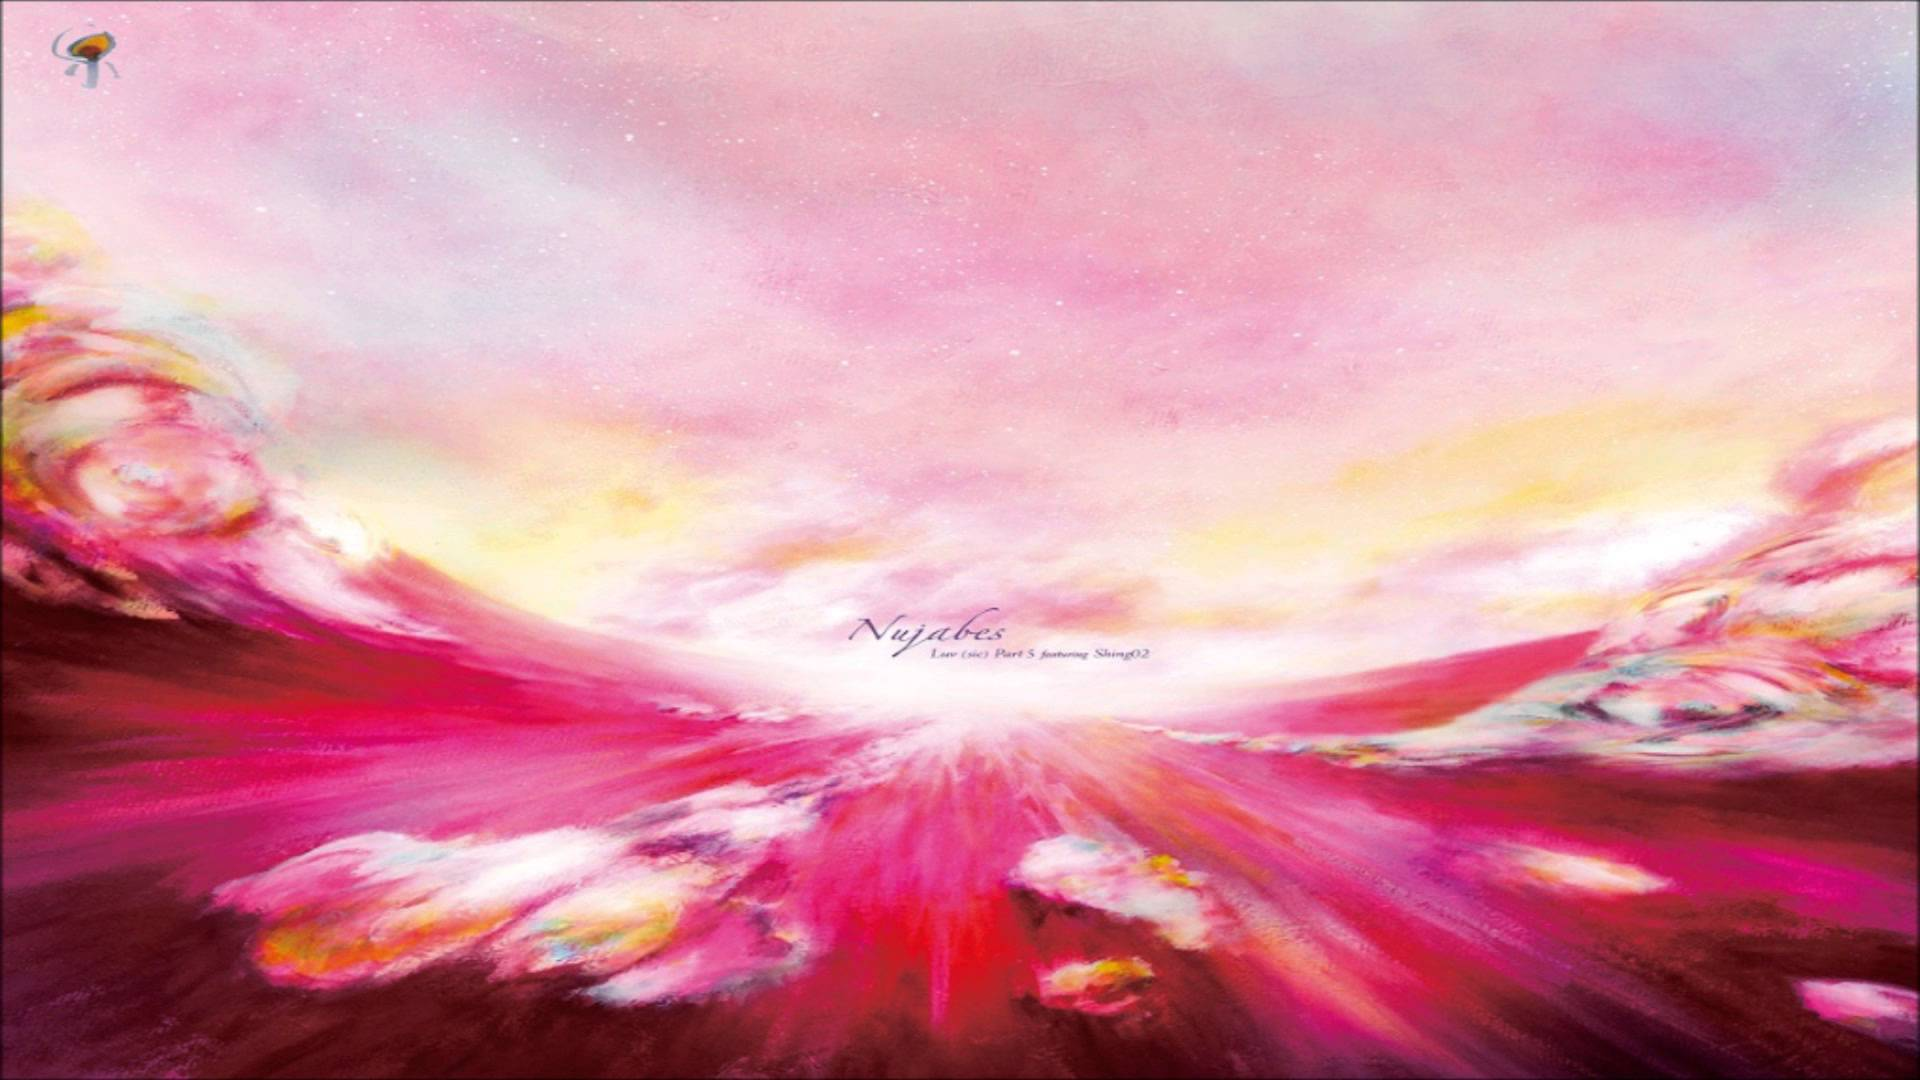 Nujabes feat. Shing02 - Luv(sic)